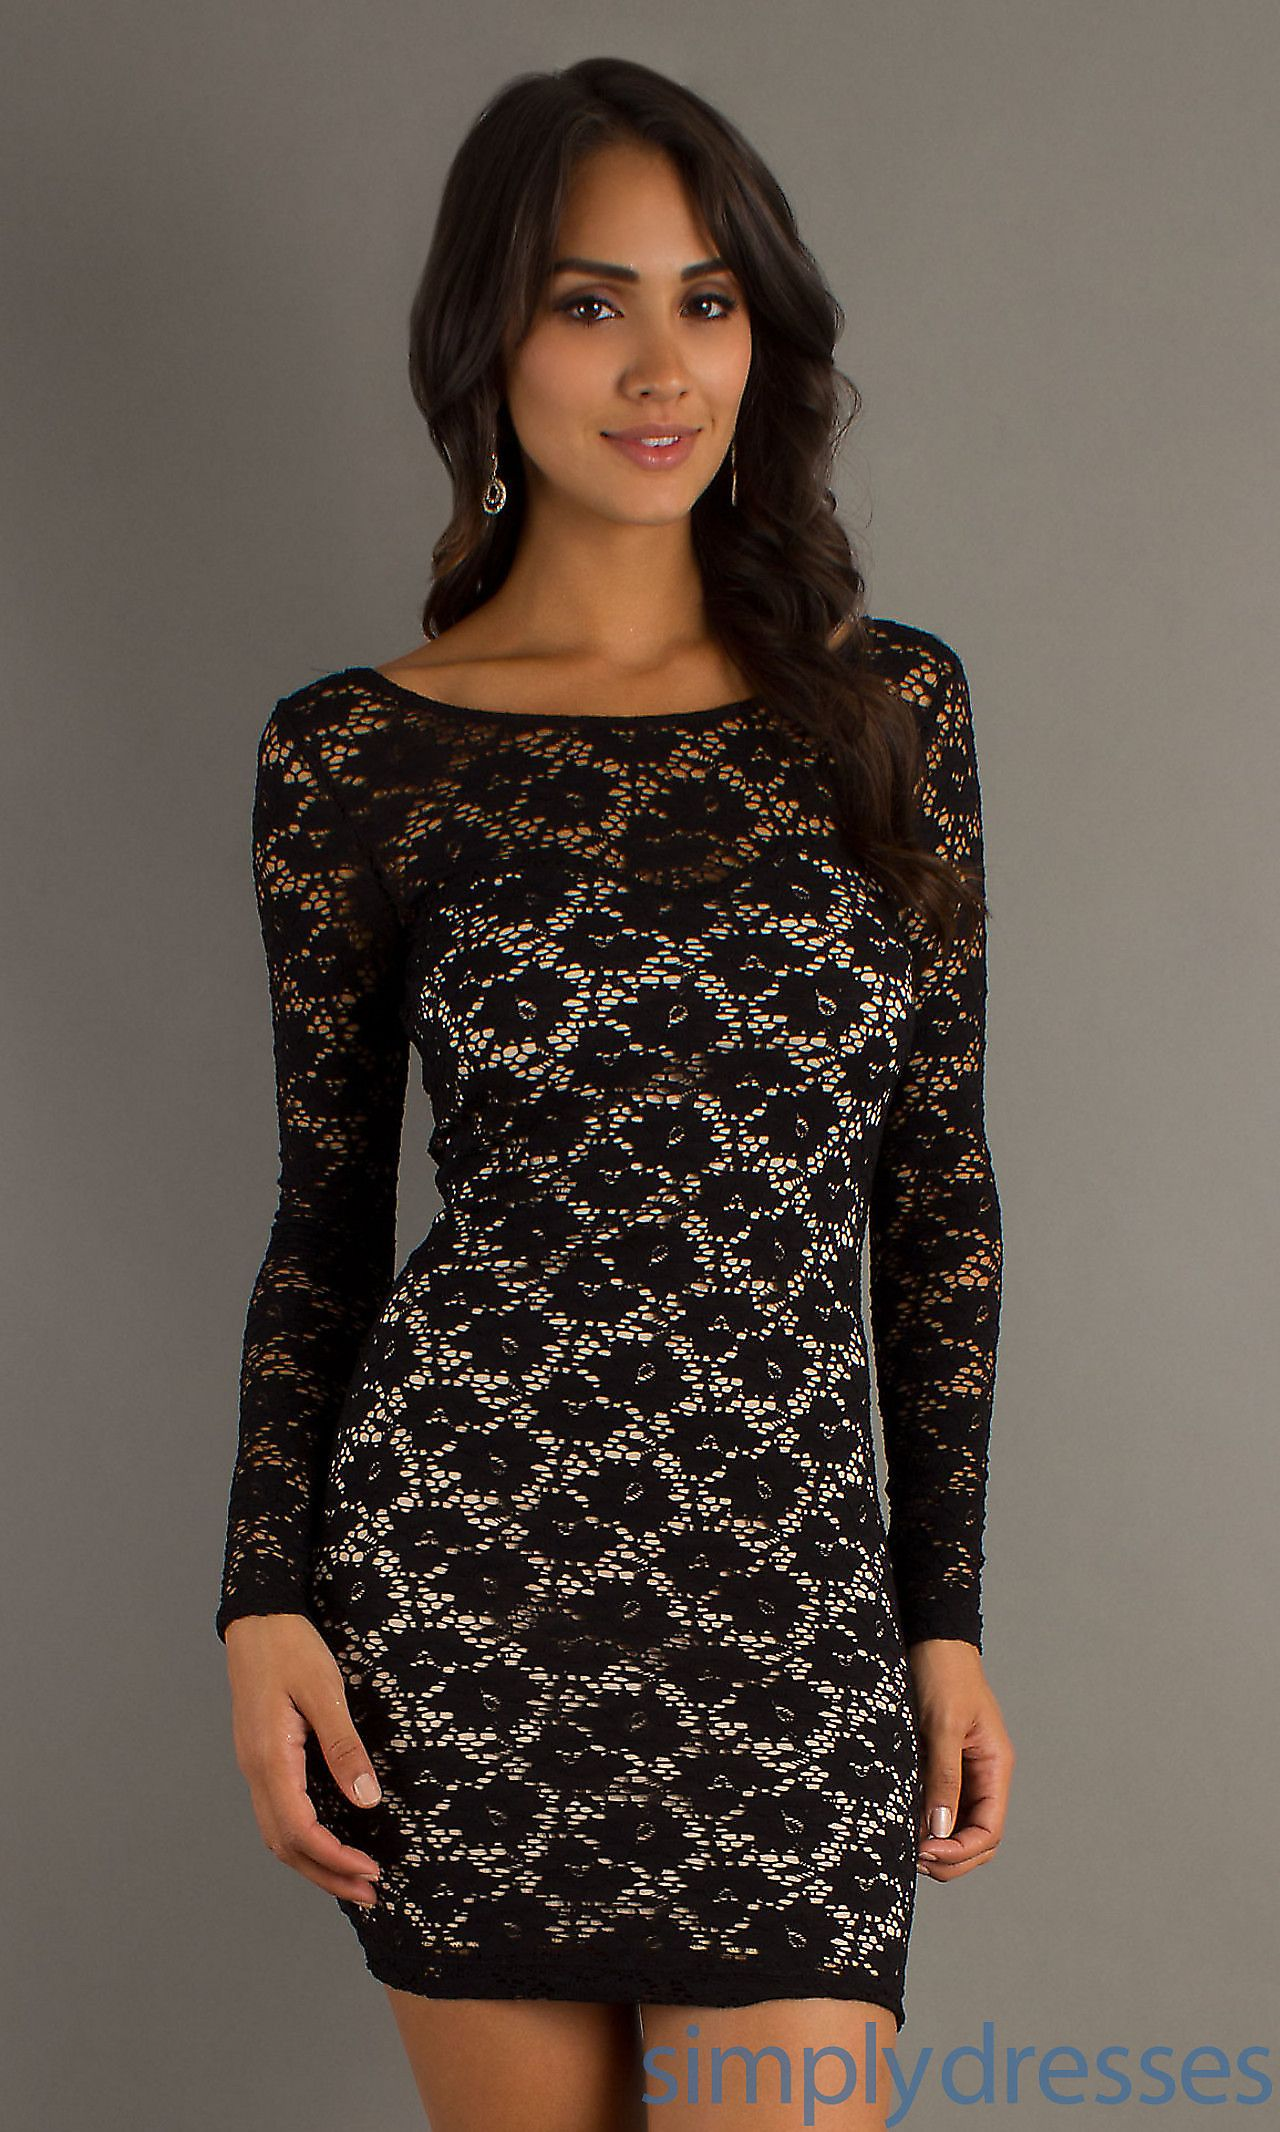 Short black lace dress fashion pinterest long prom dresses